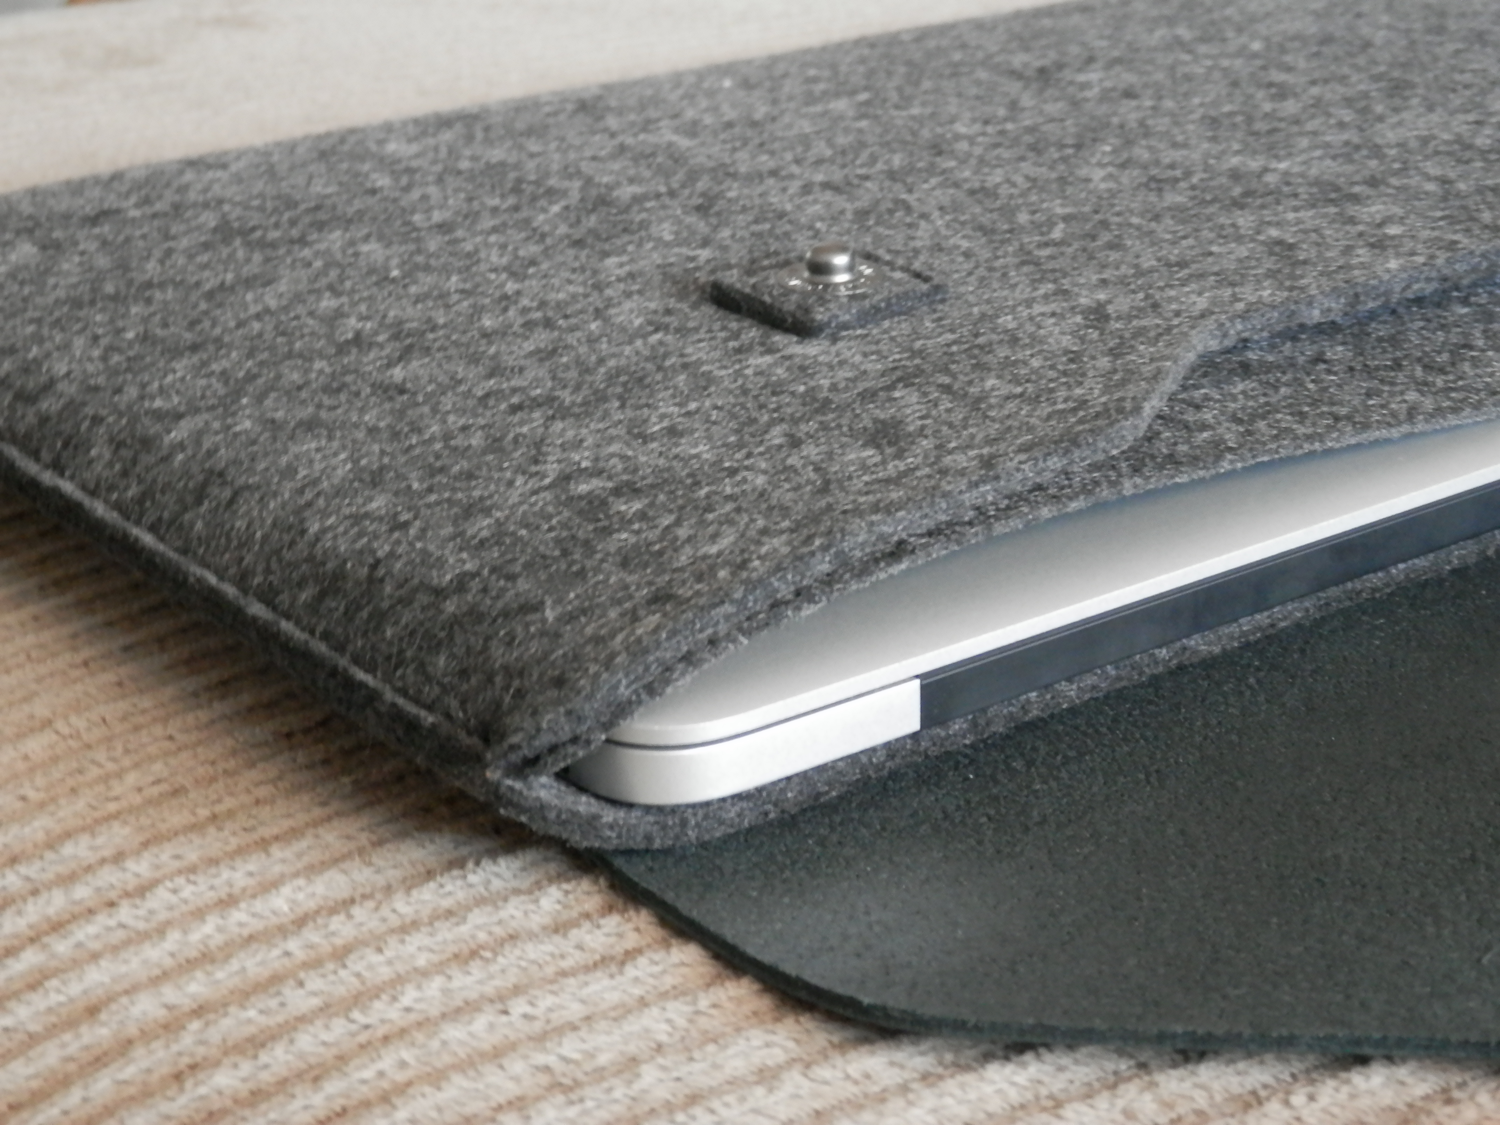 competitive price 8e548 be5bd The Mujjo Sleeve looks classy and keeps your Mac notebook safe as ...